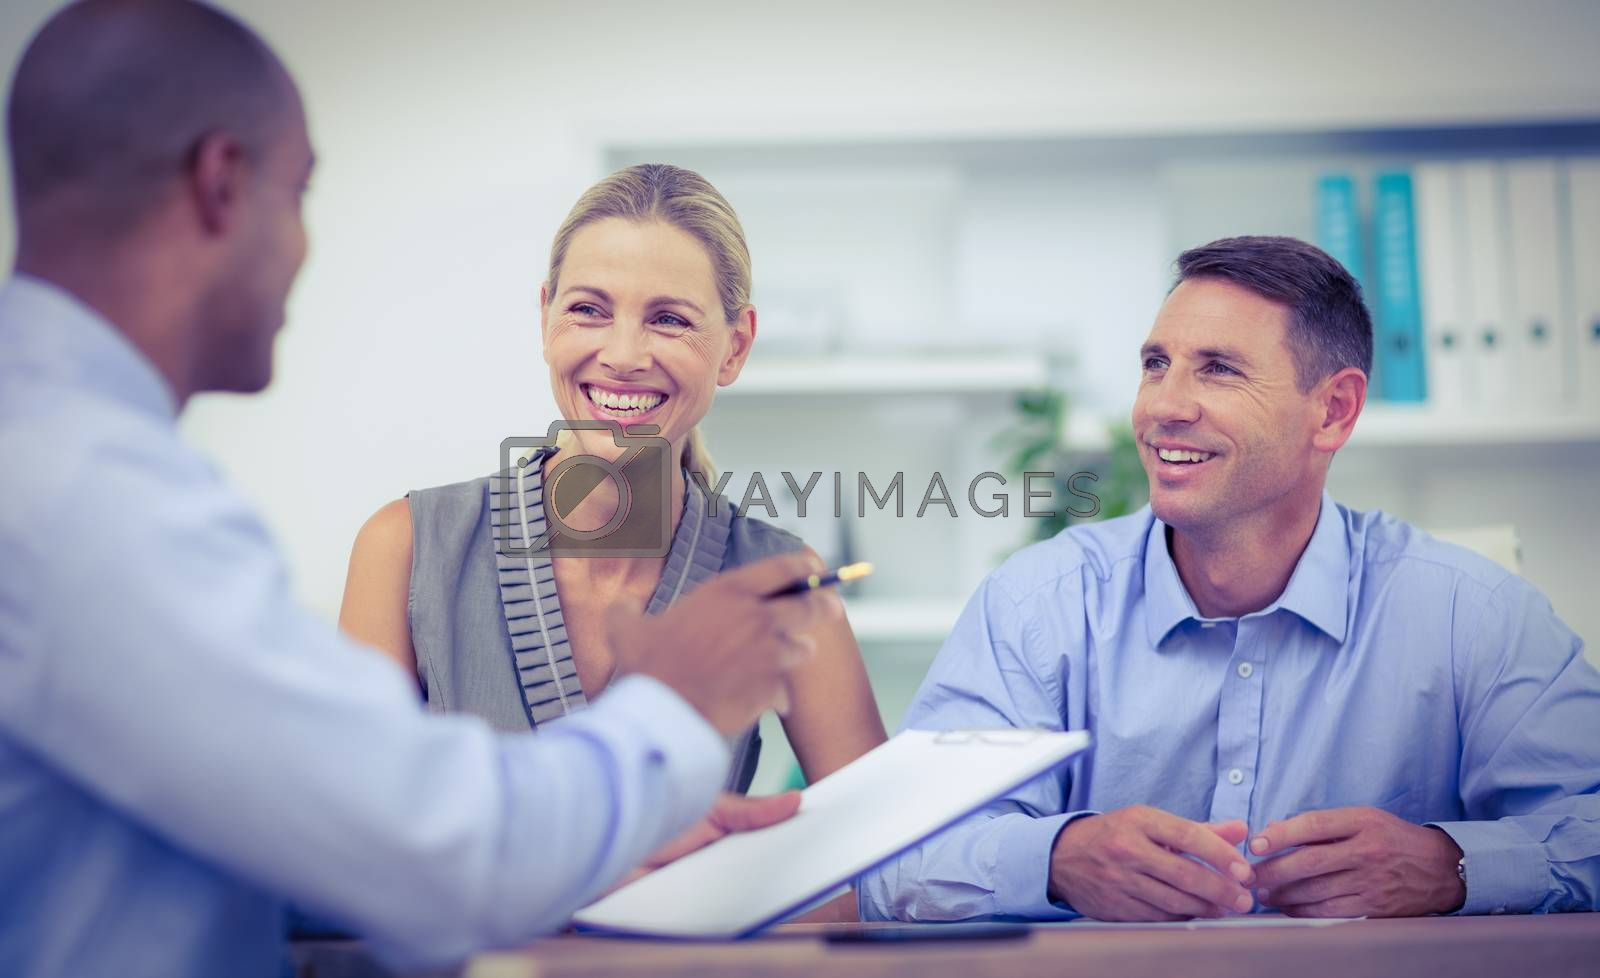 Royalty free image of Business partners working on laptop by Wavebreakmedia